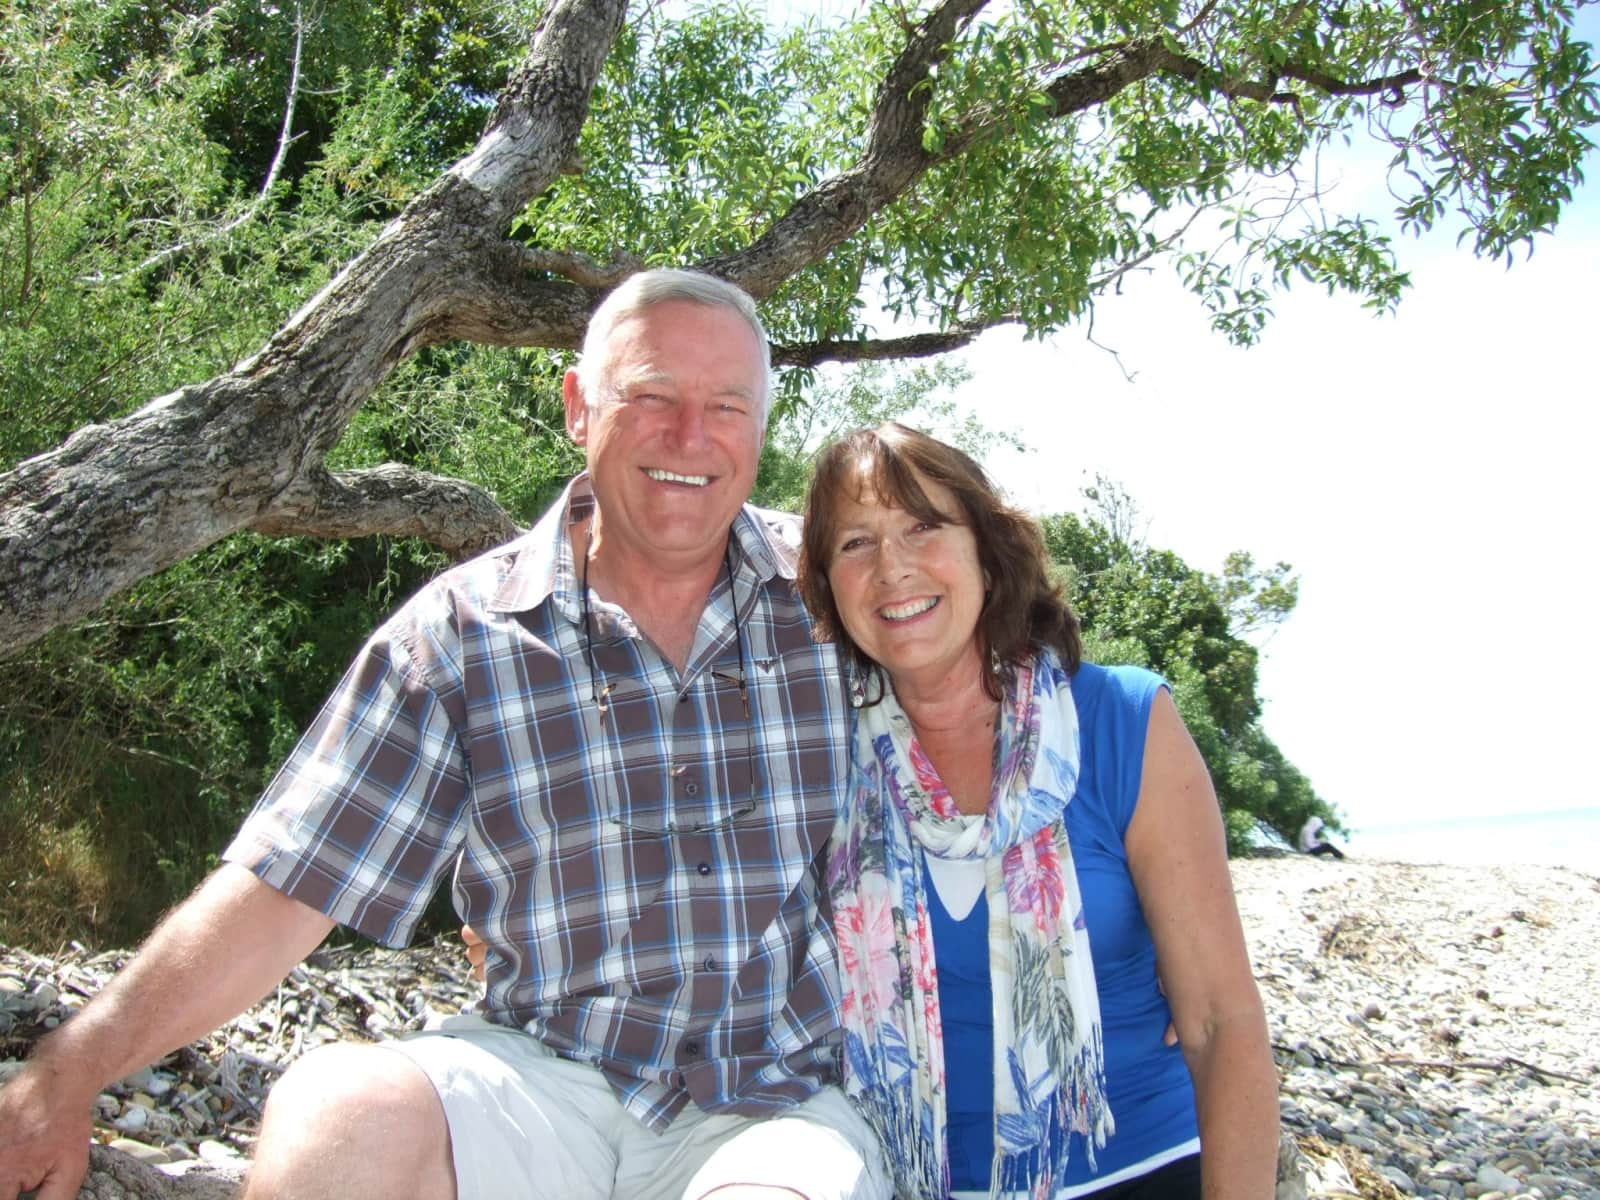 Ana & Jim from Nelson, New Zealand